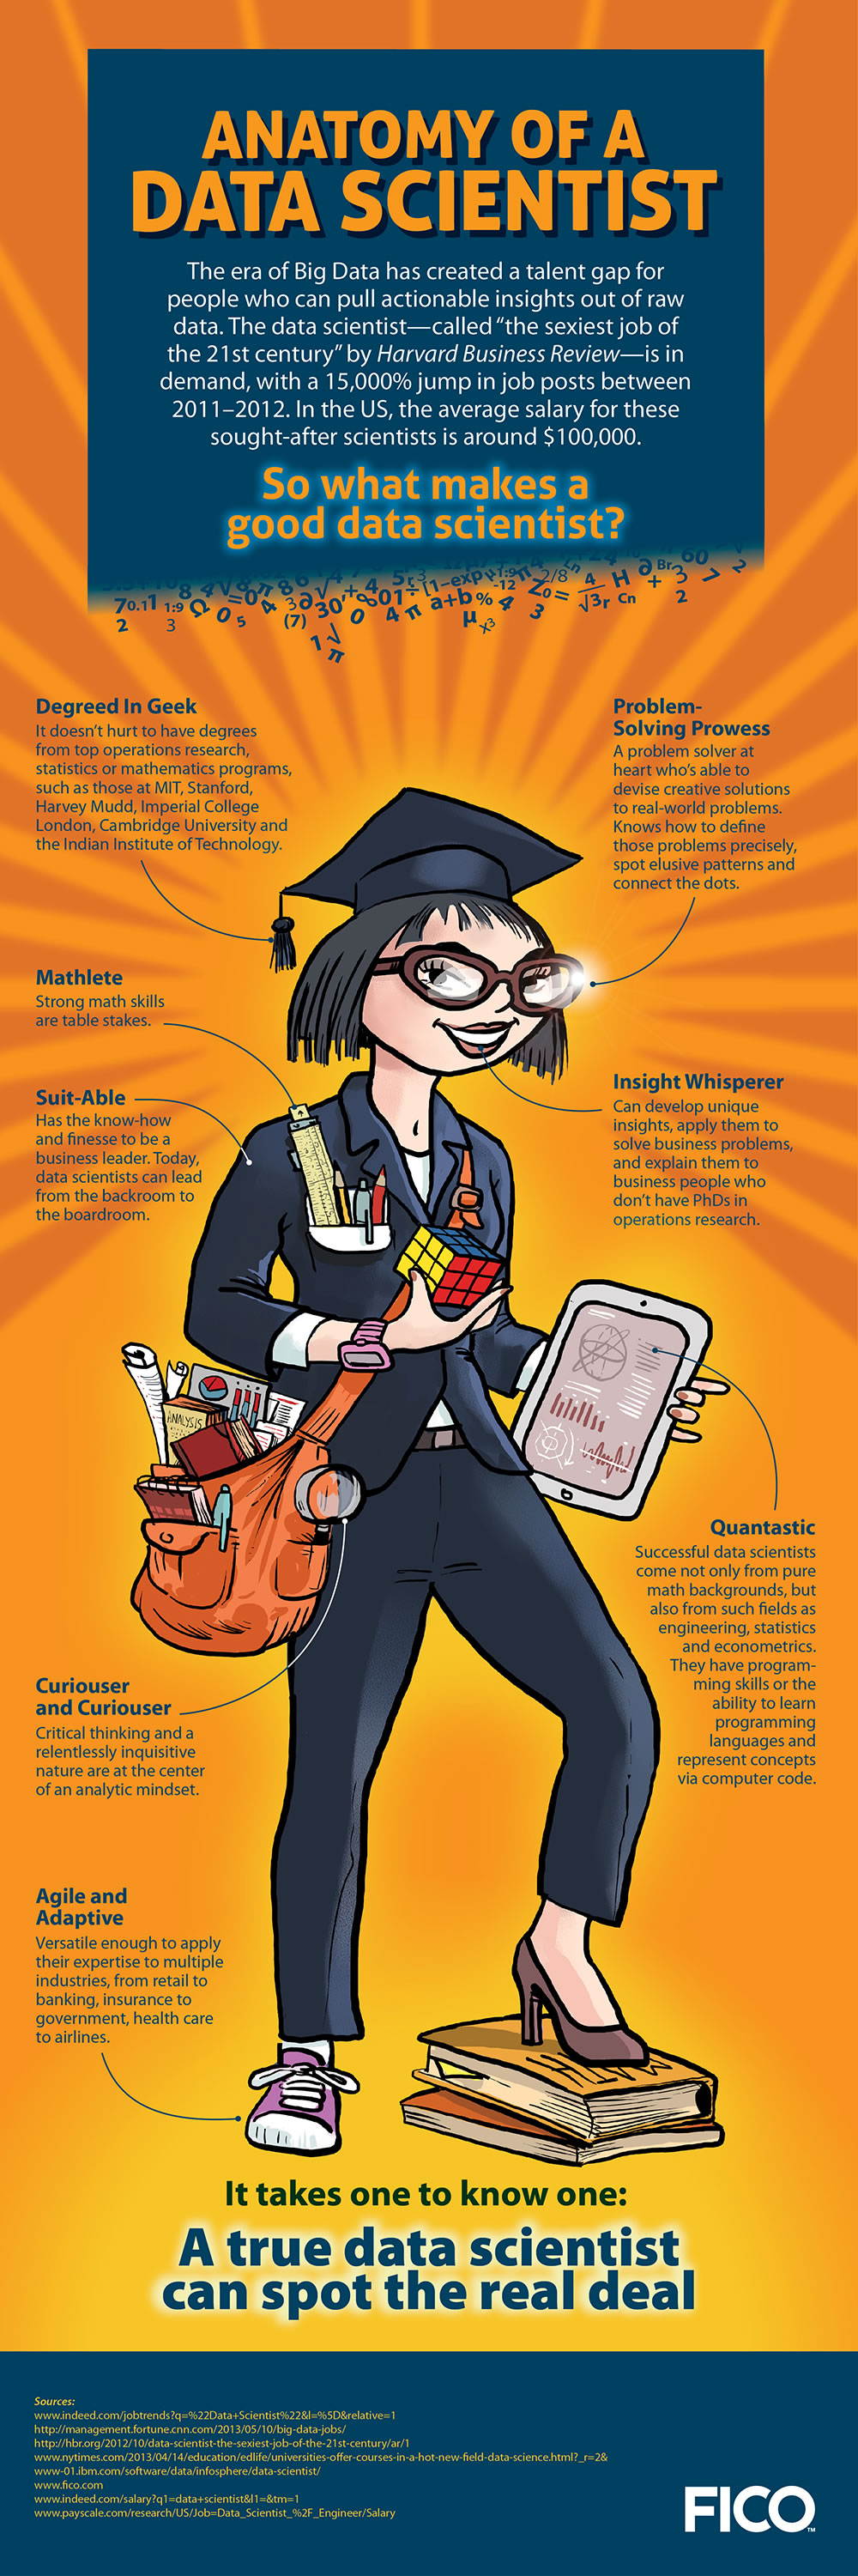 Anatomy_of_a_Data_Scientist_infographic_WR